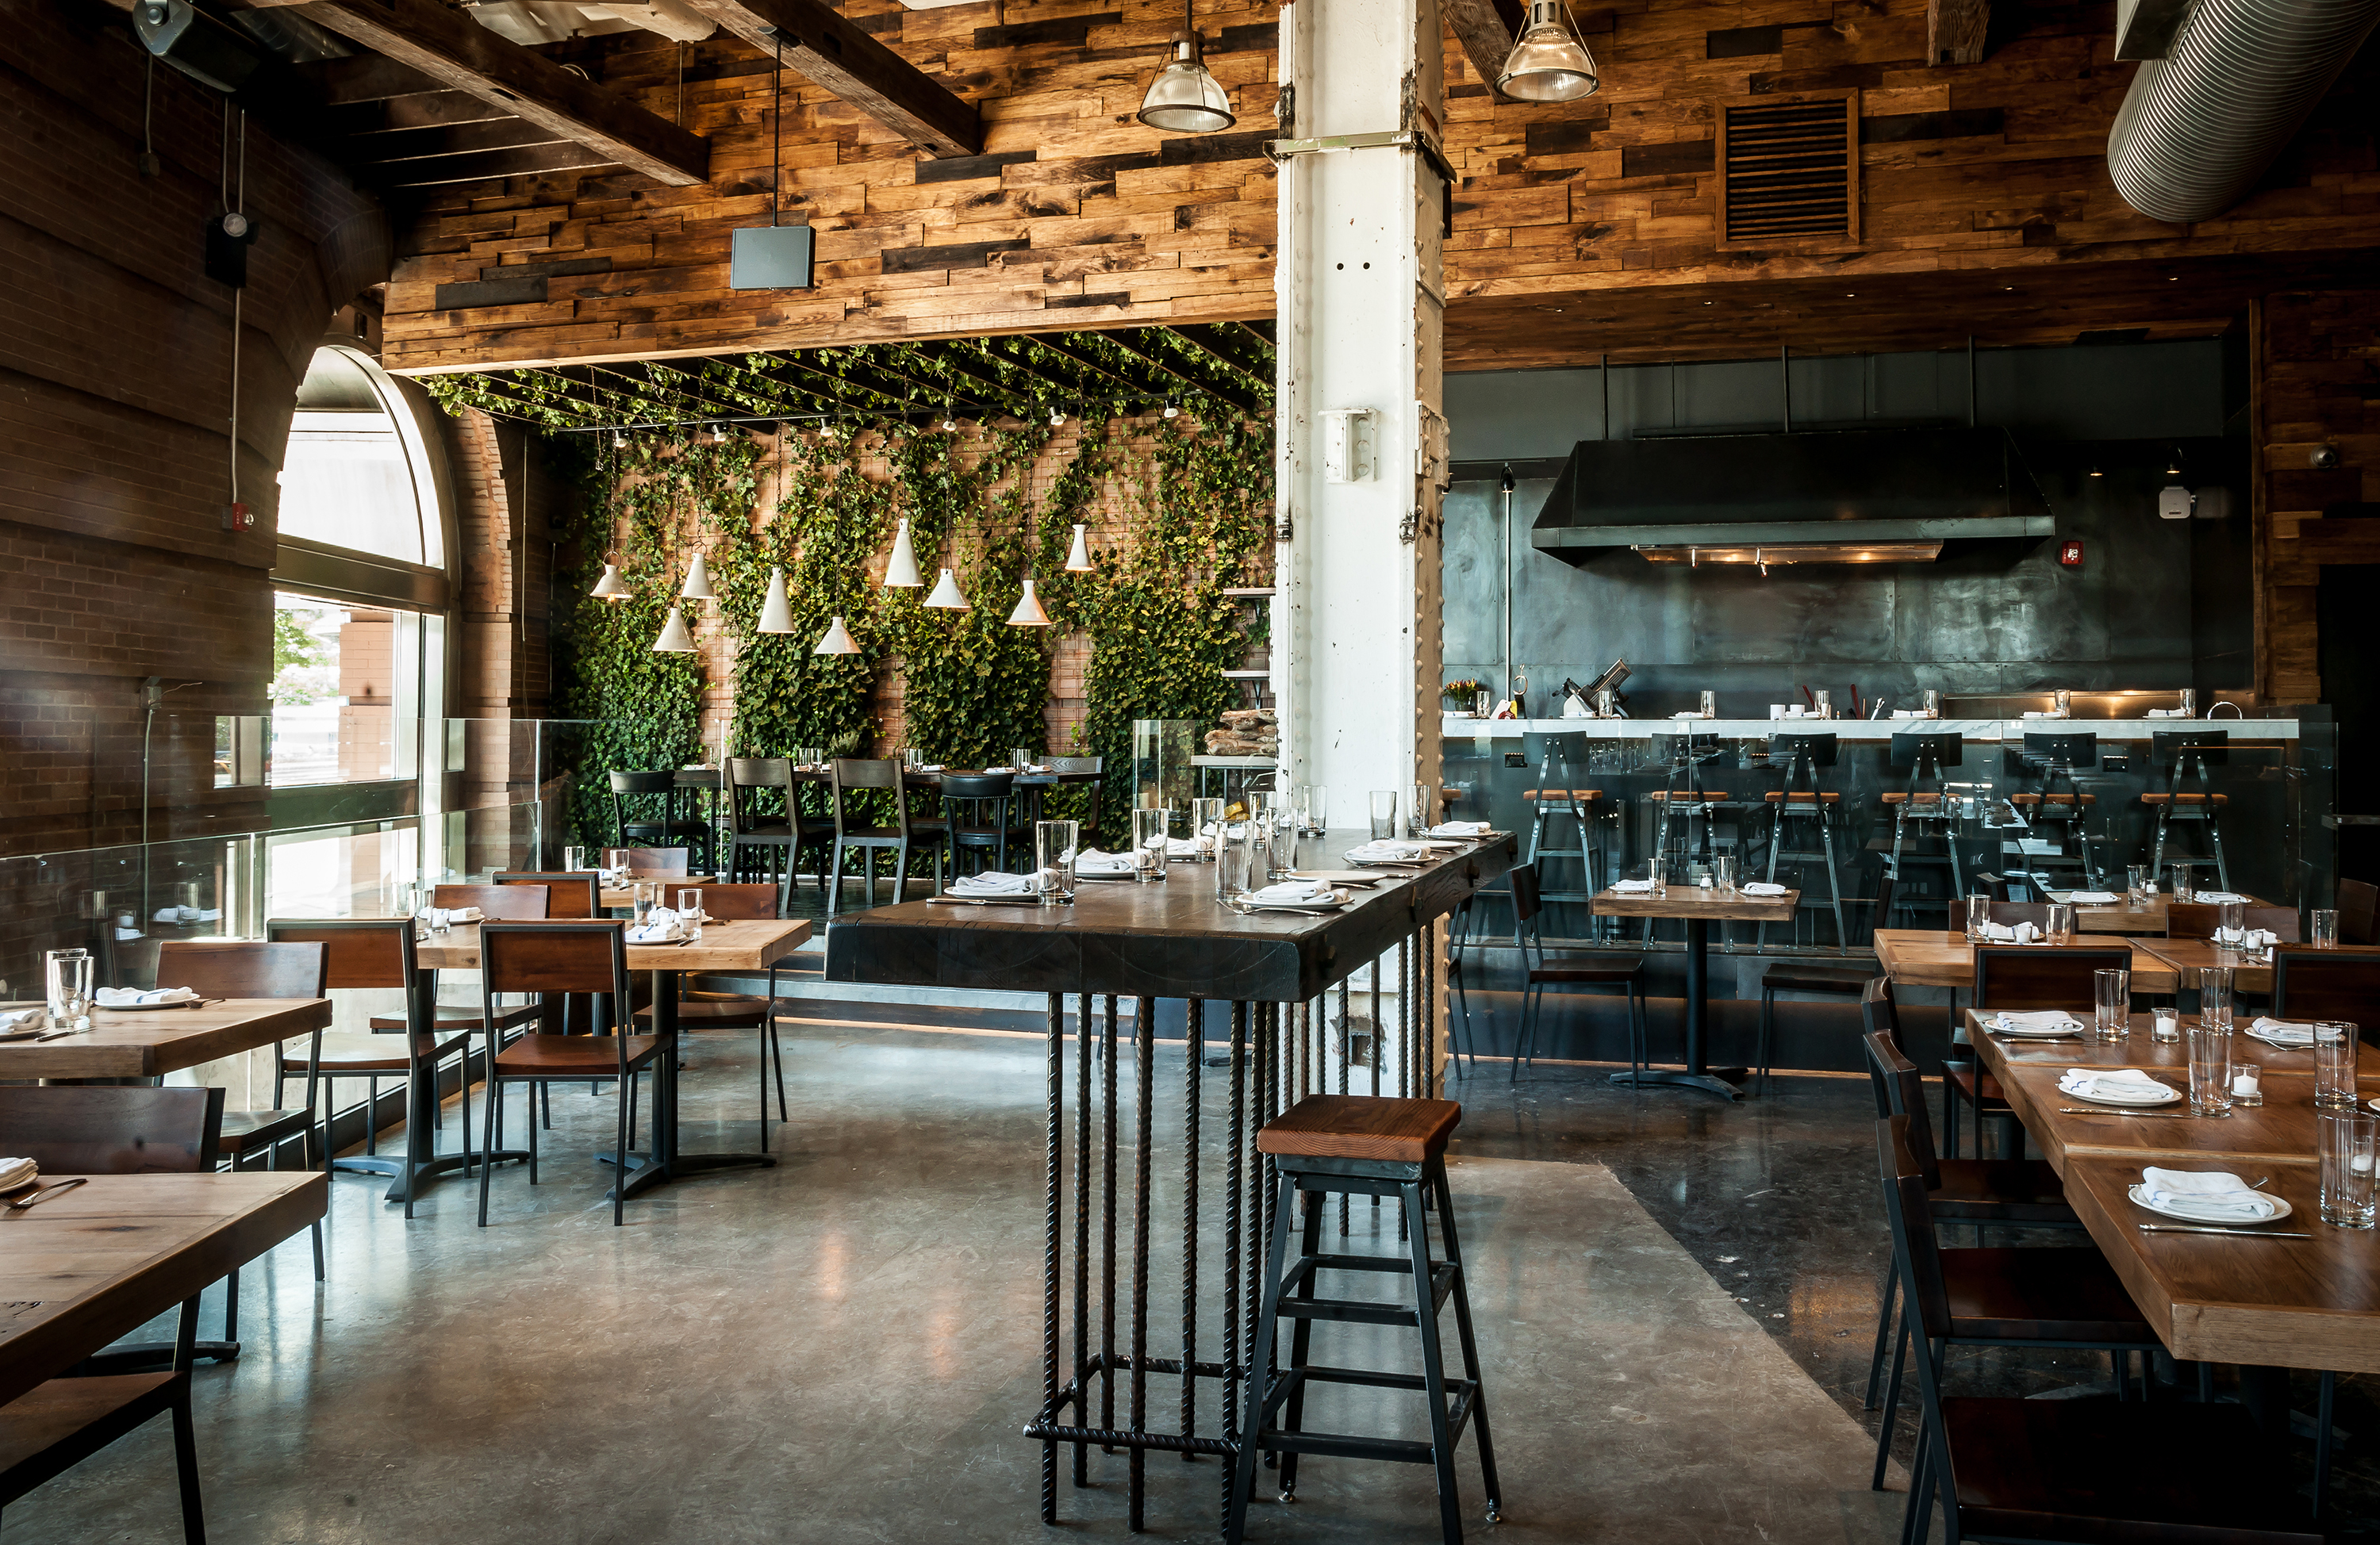 Escape to upscale barcelona at toro nyc daily food wine